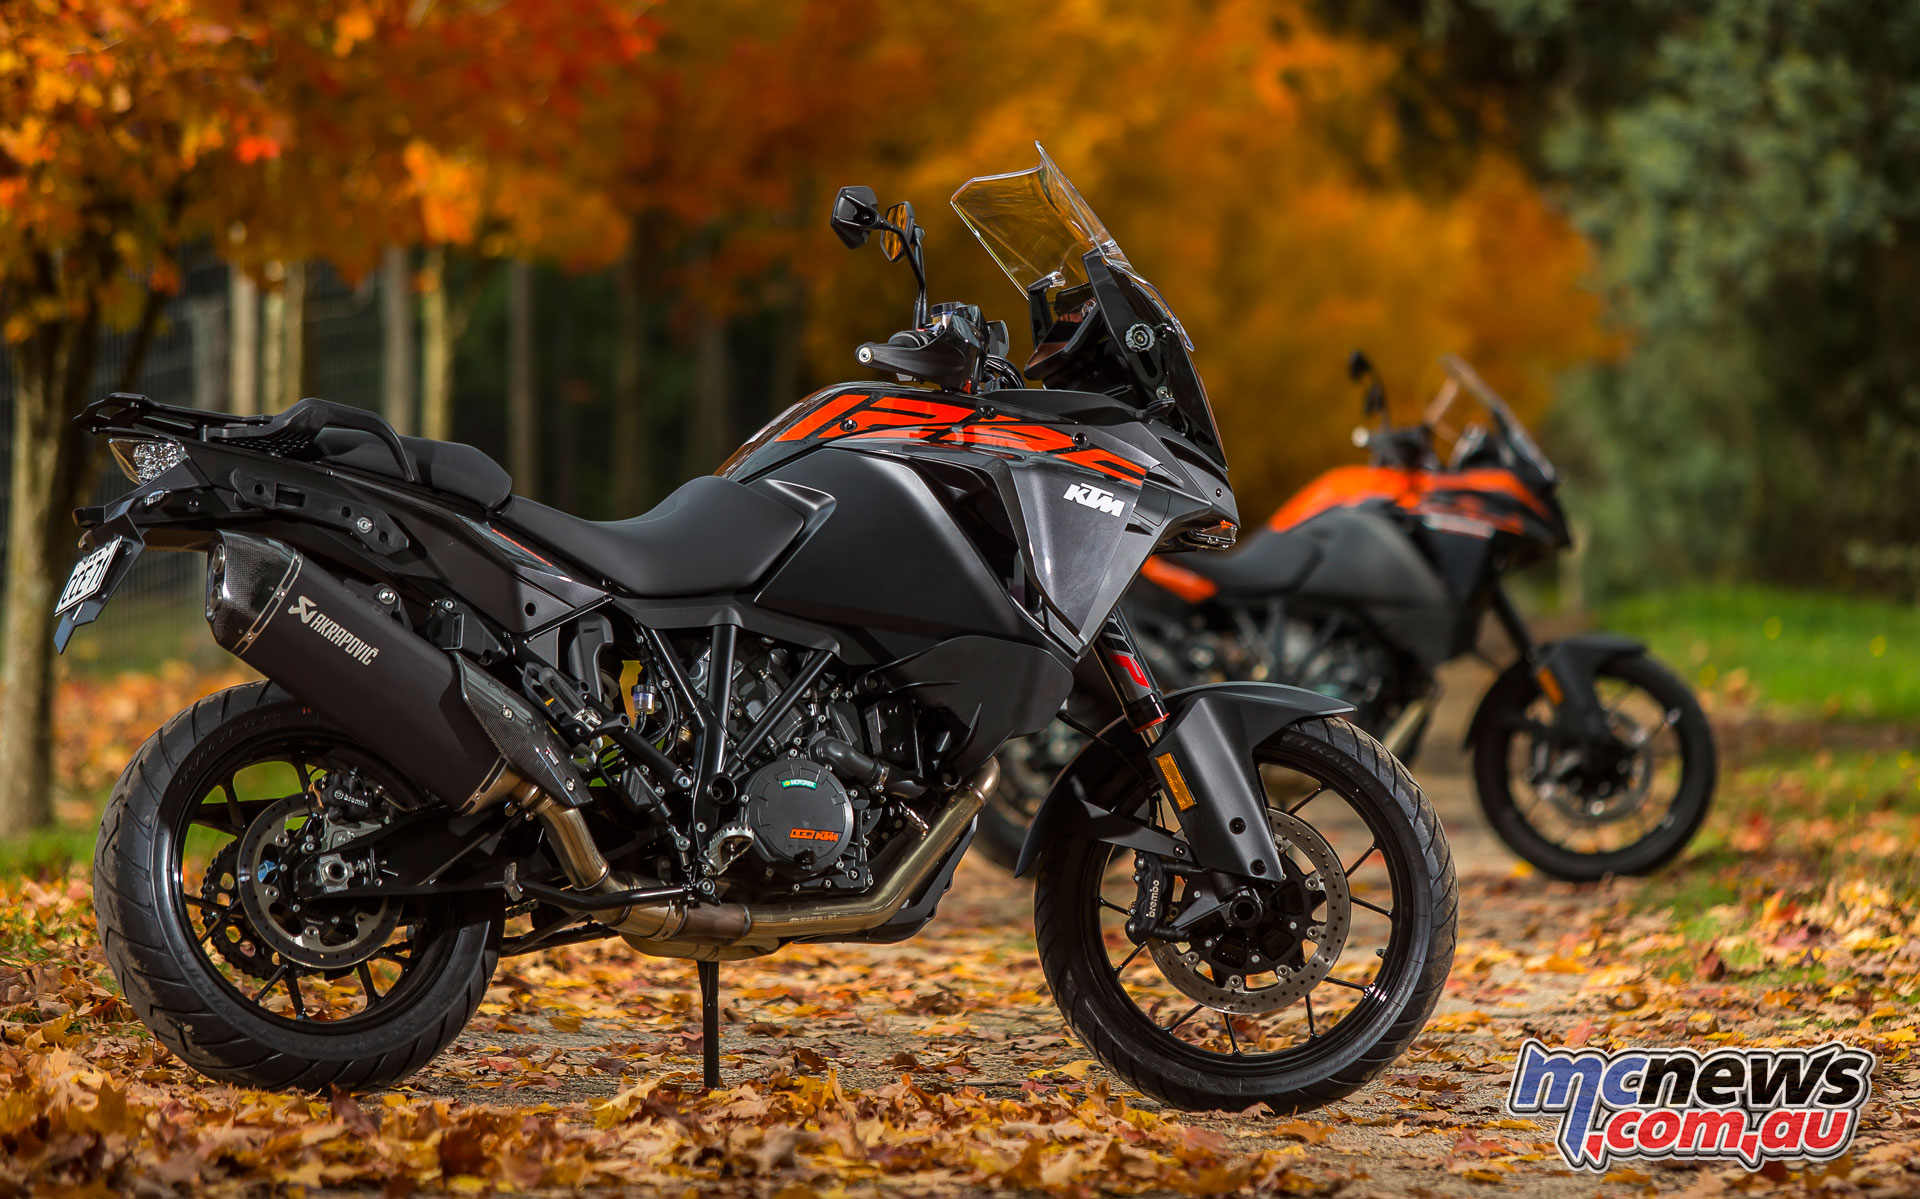 2017 Ktm 1290 Super Adventure S Tested Motorcycle News Sport And Reviews